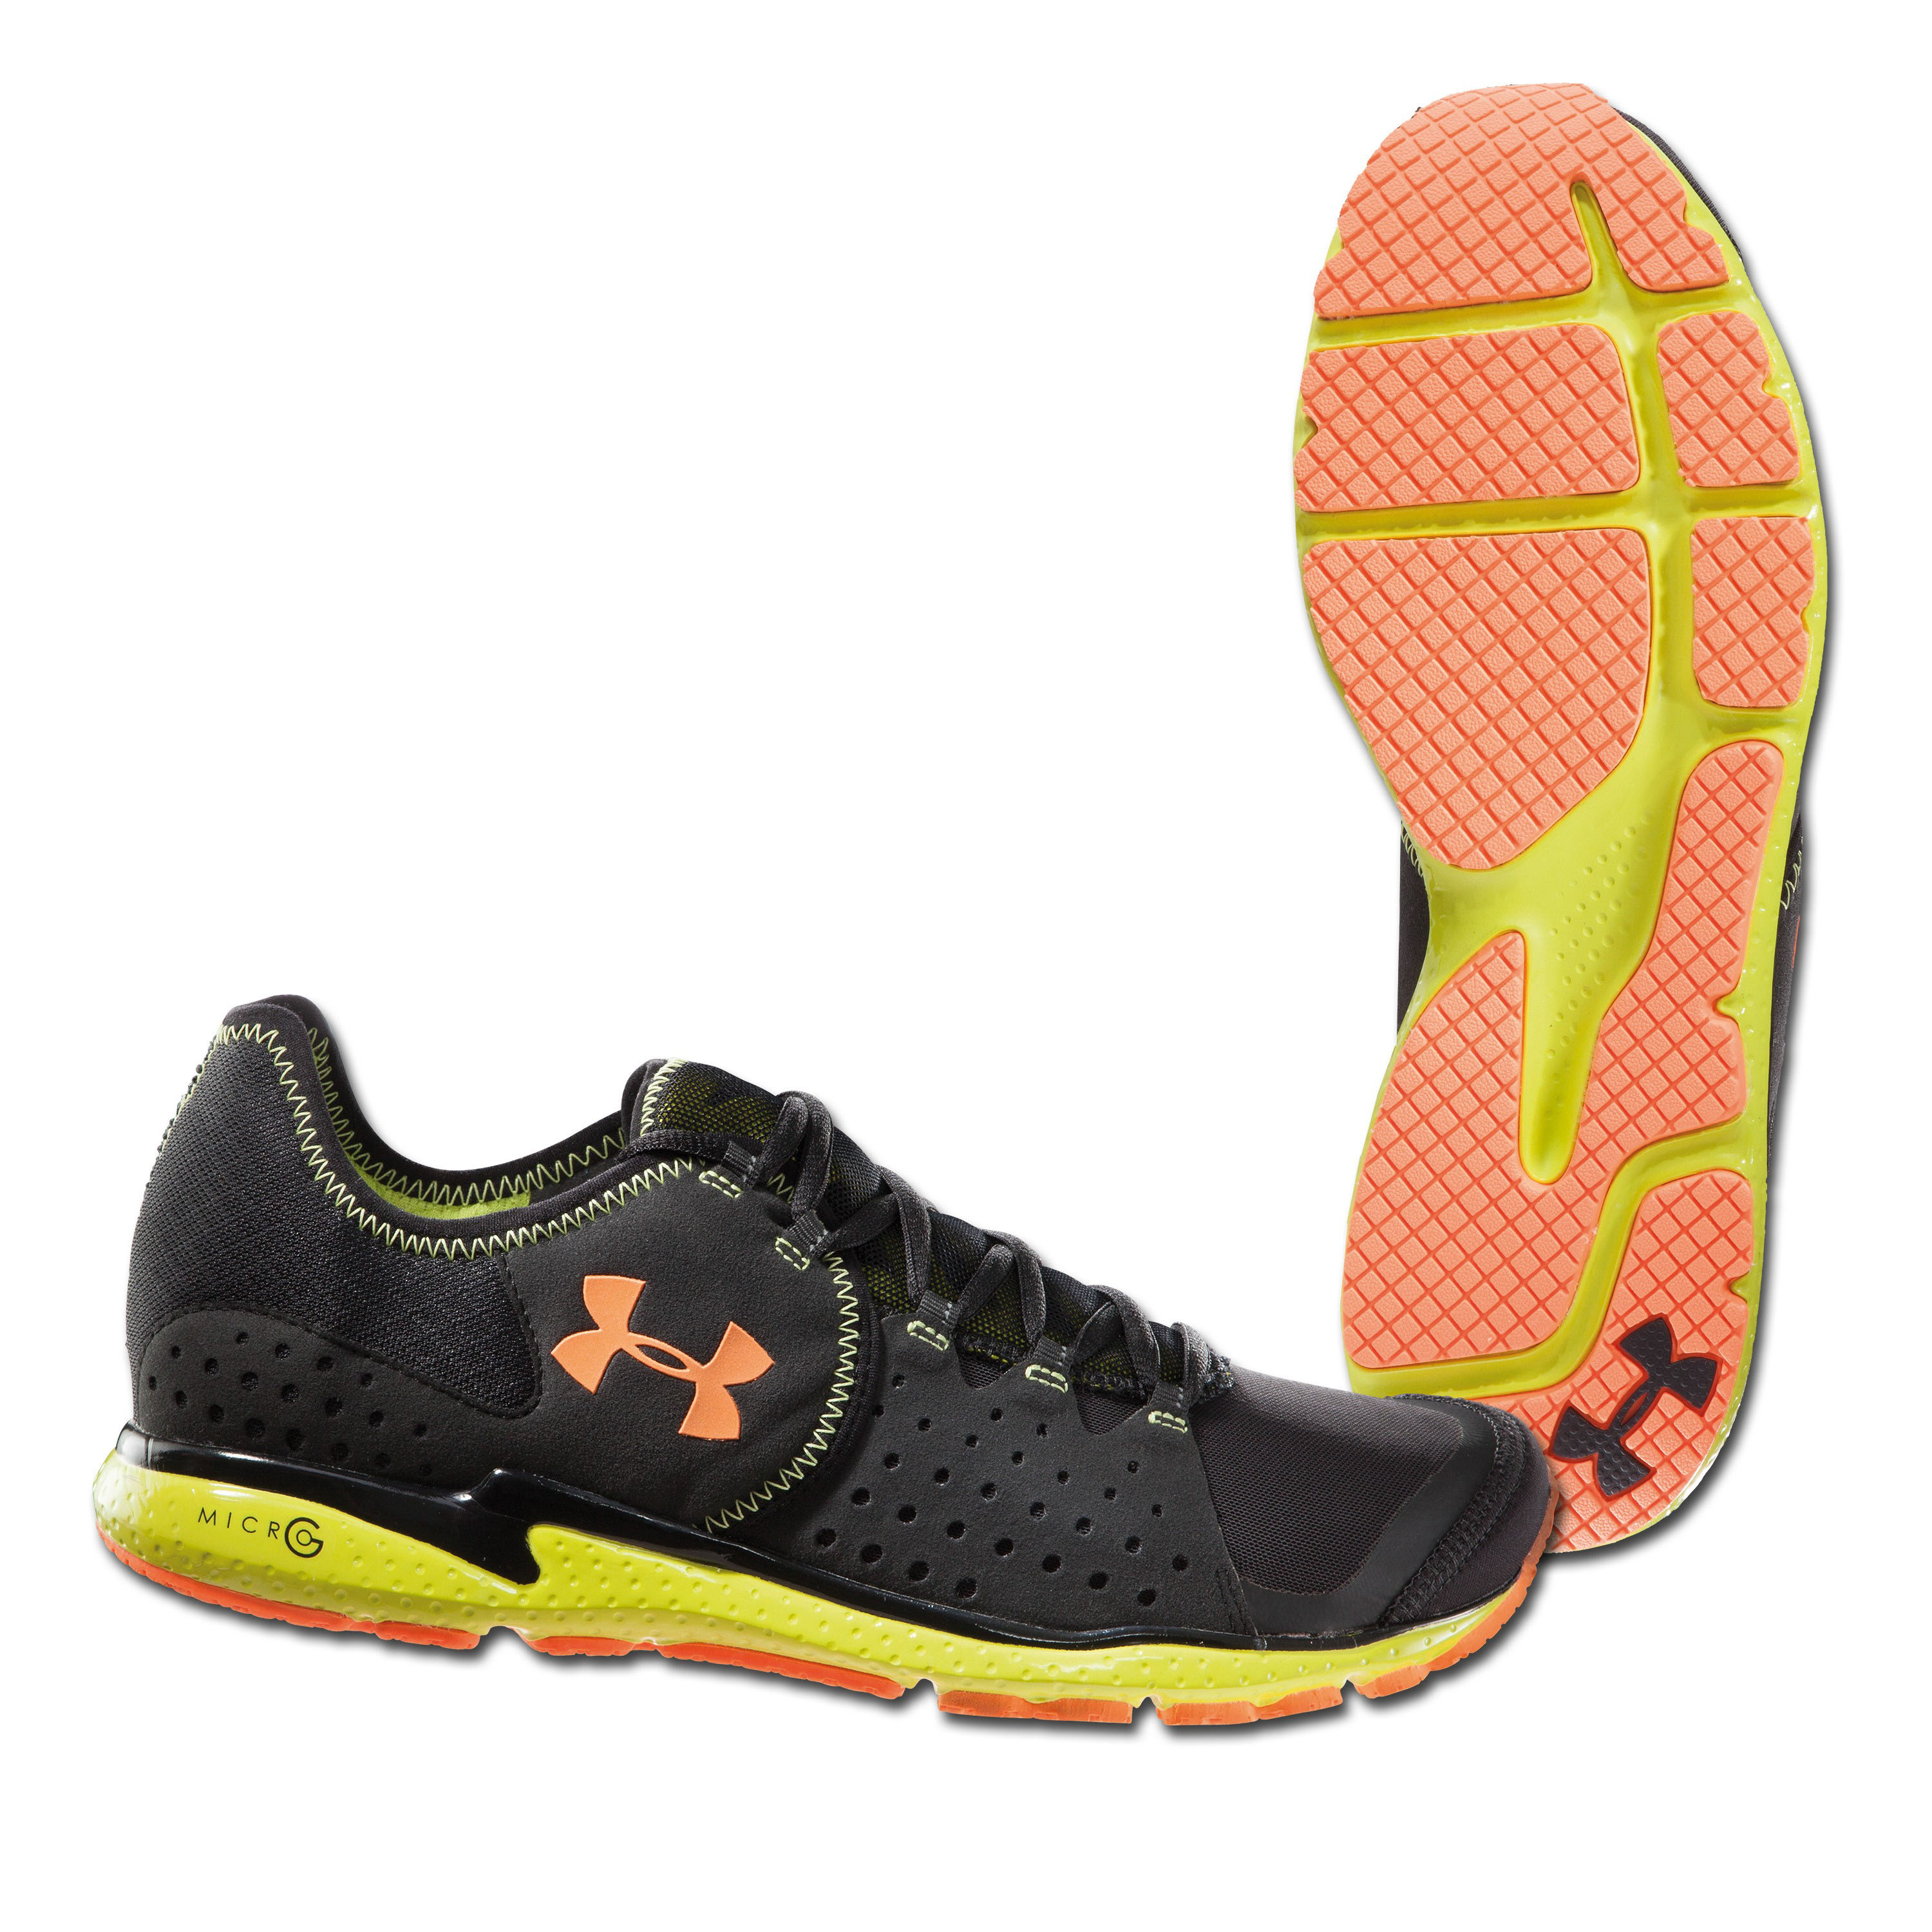 Under Armour Running Shoe Micro G